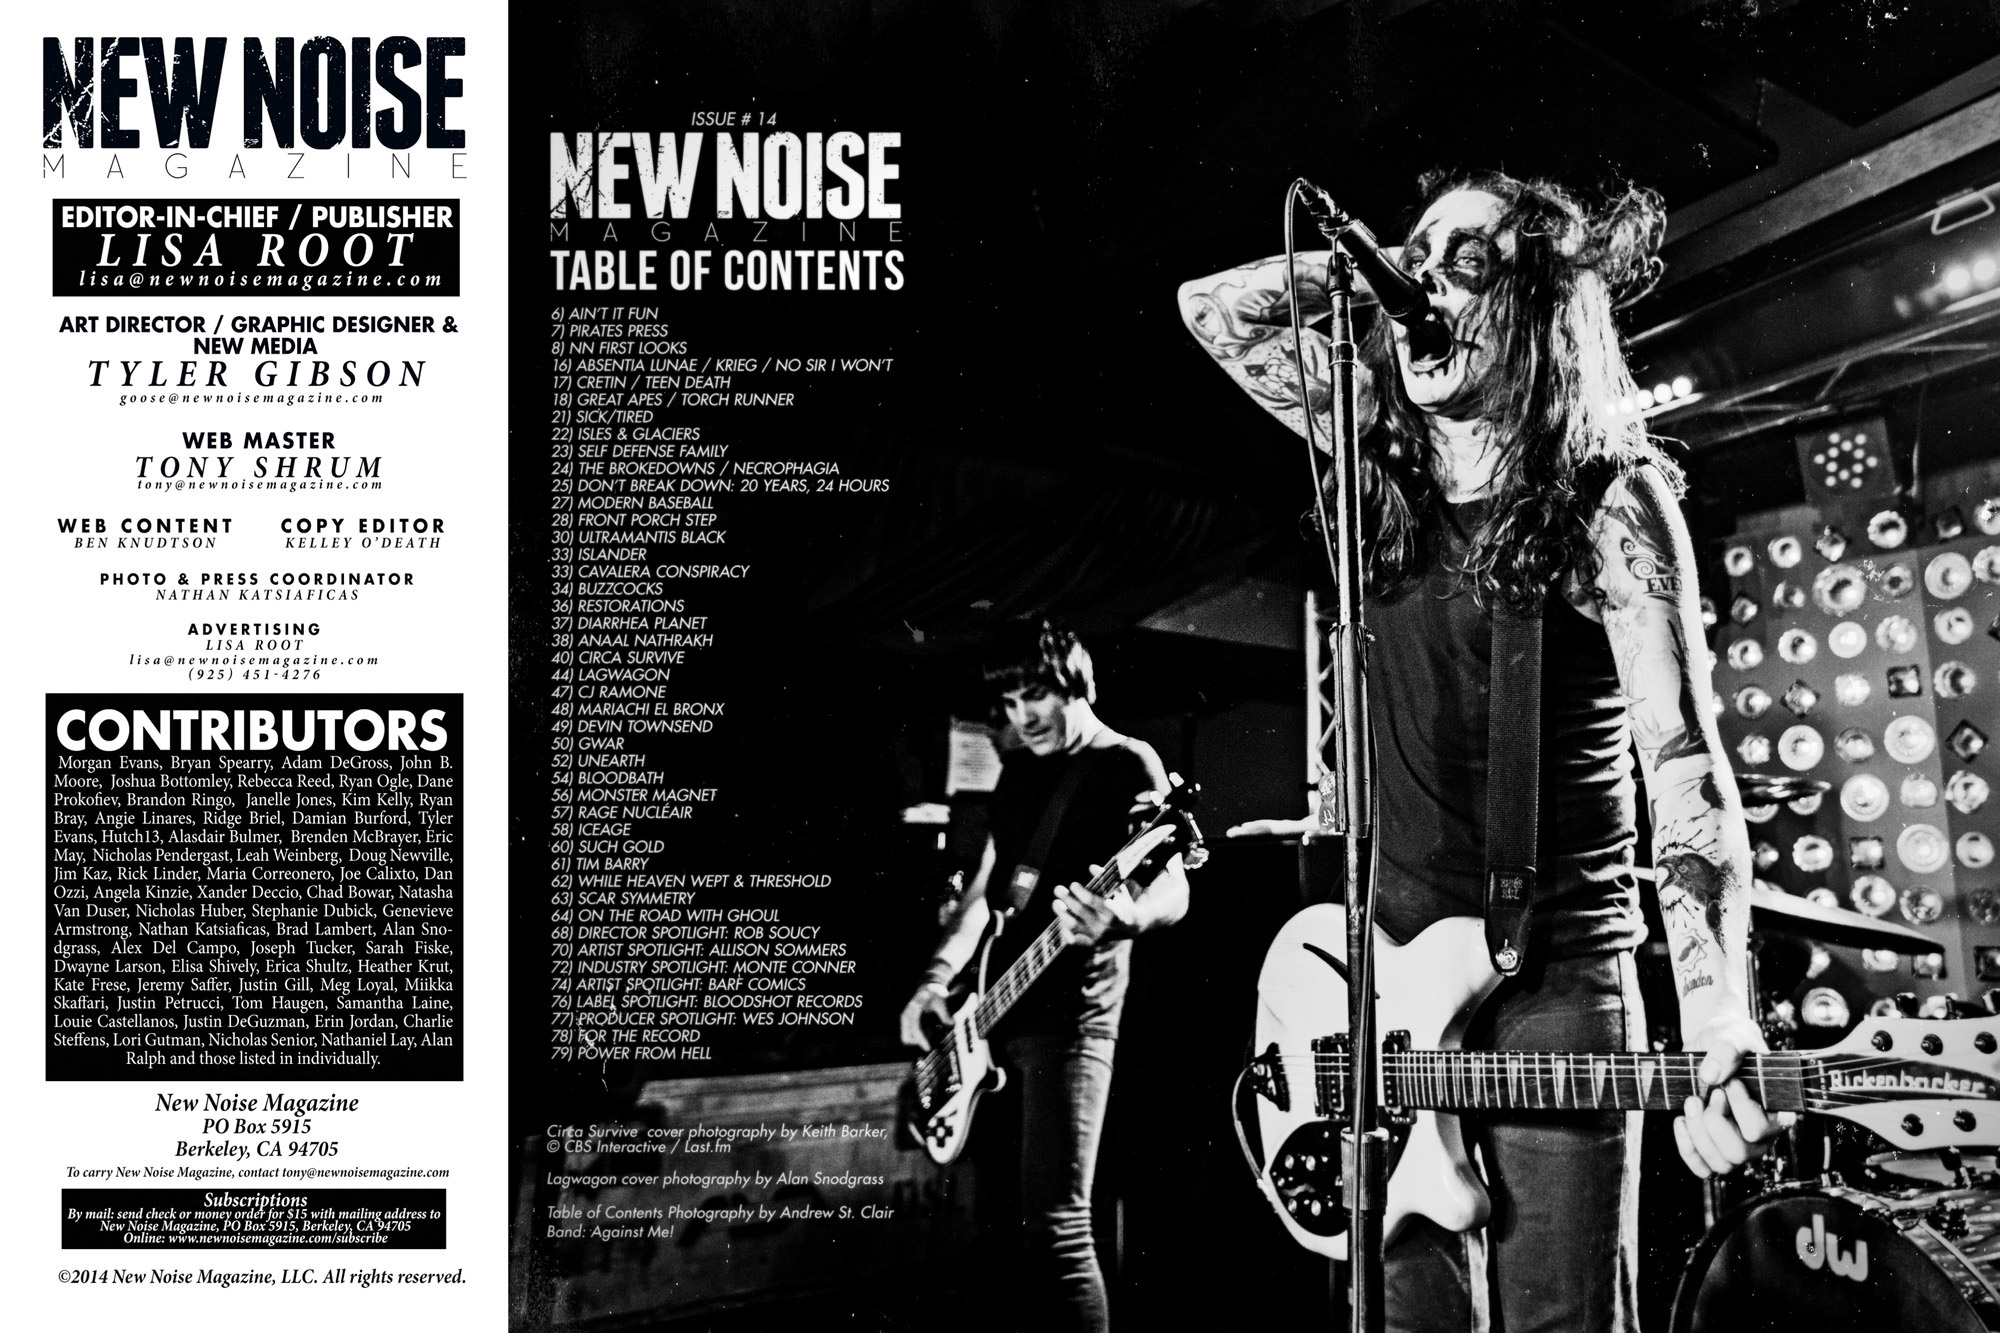 against-me-toc-new-noise-magazine-issue-14